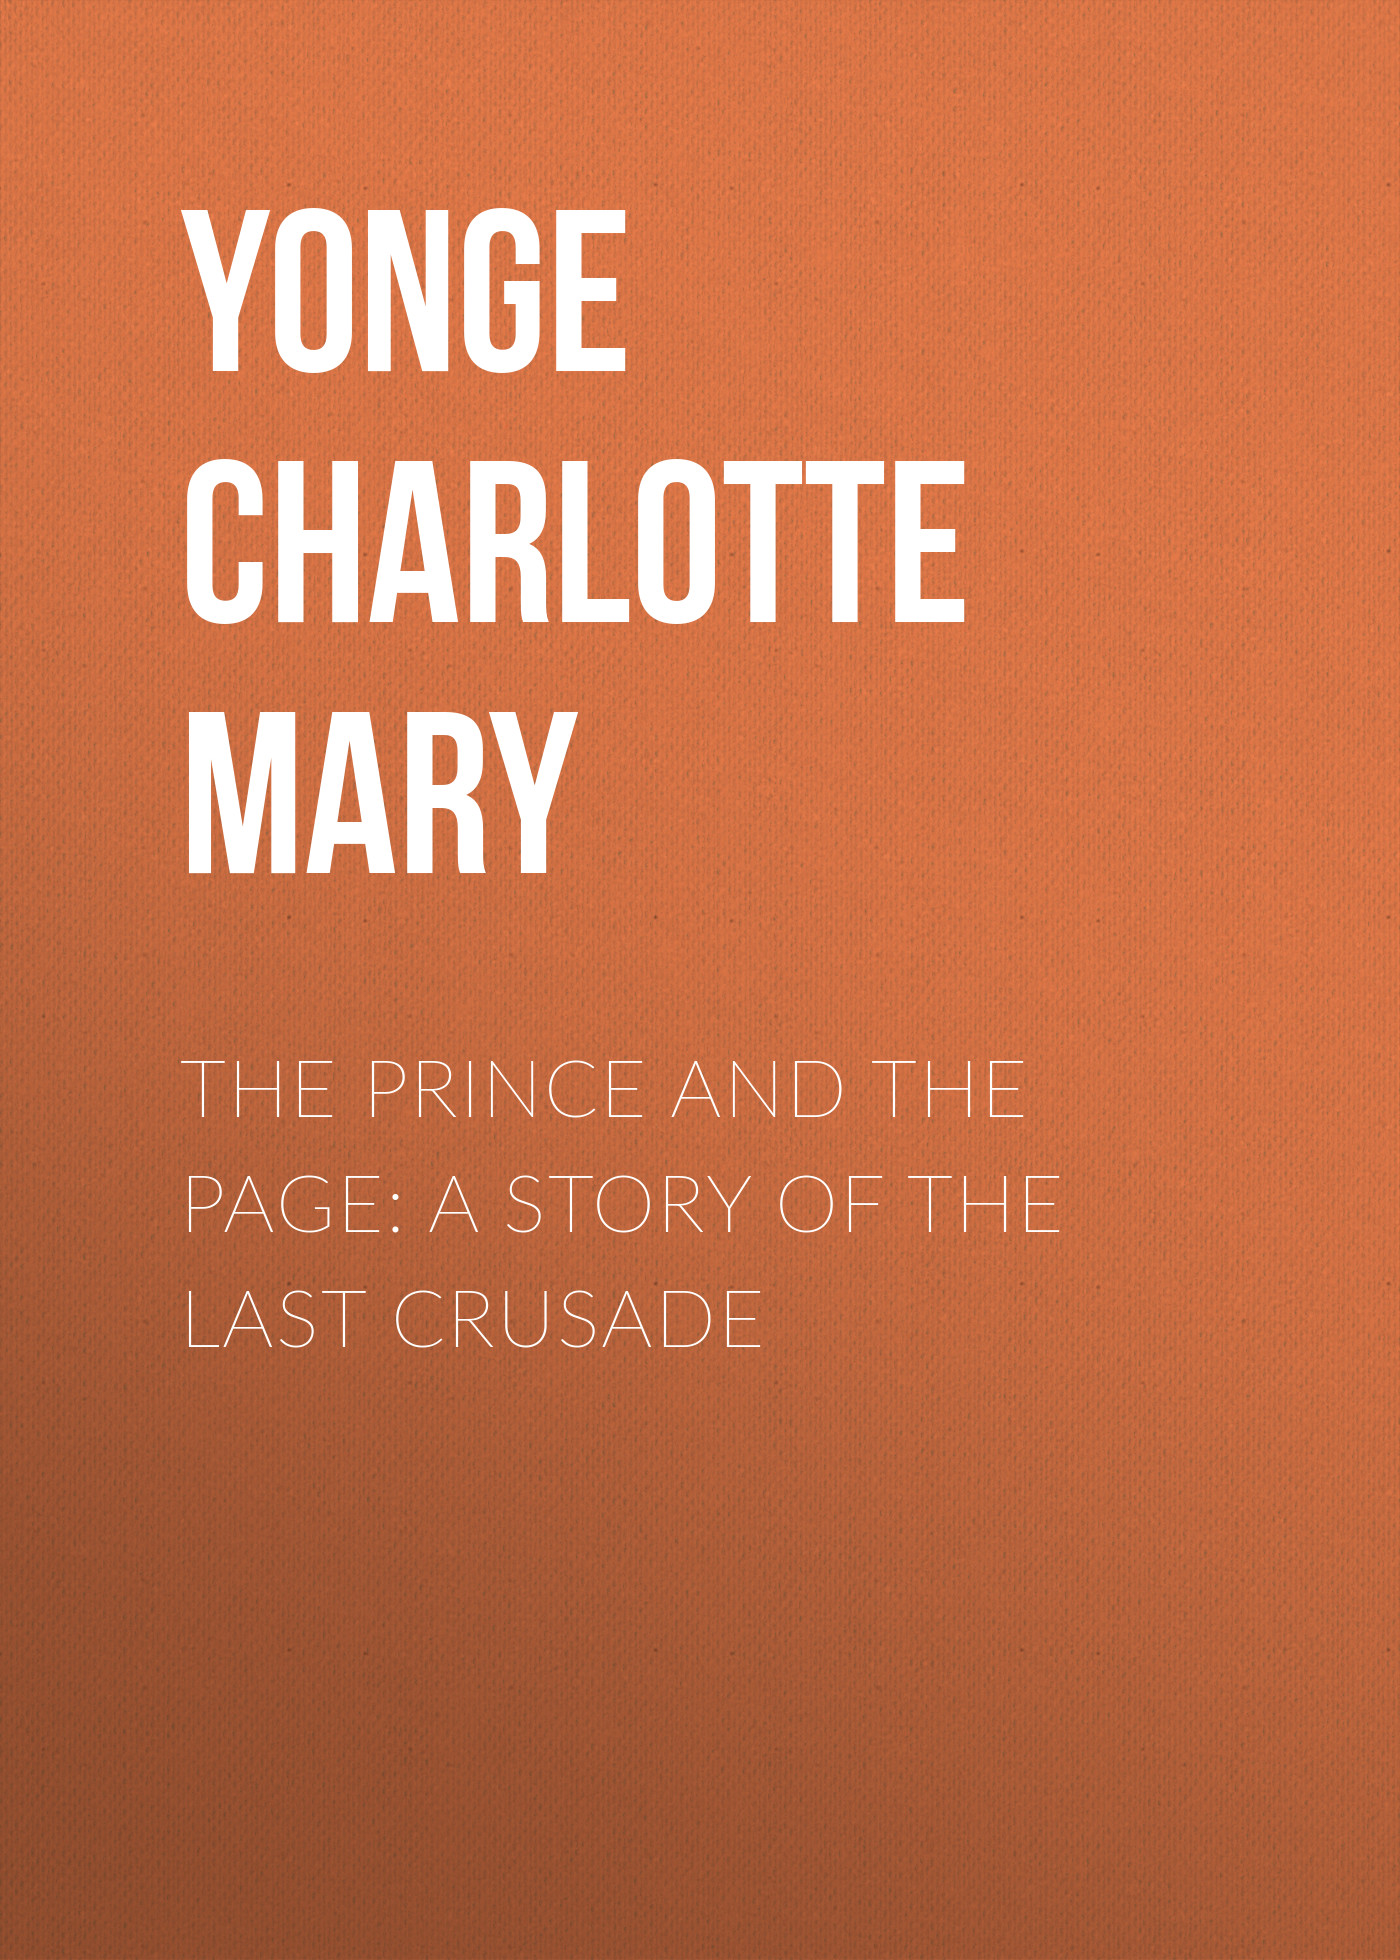 Yonge Charlotte Mary The Prince and the Page: A Story of the Last Crusade mary burbidge forever baby jenny's story a mother's diary